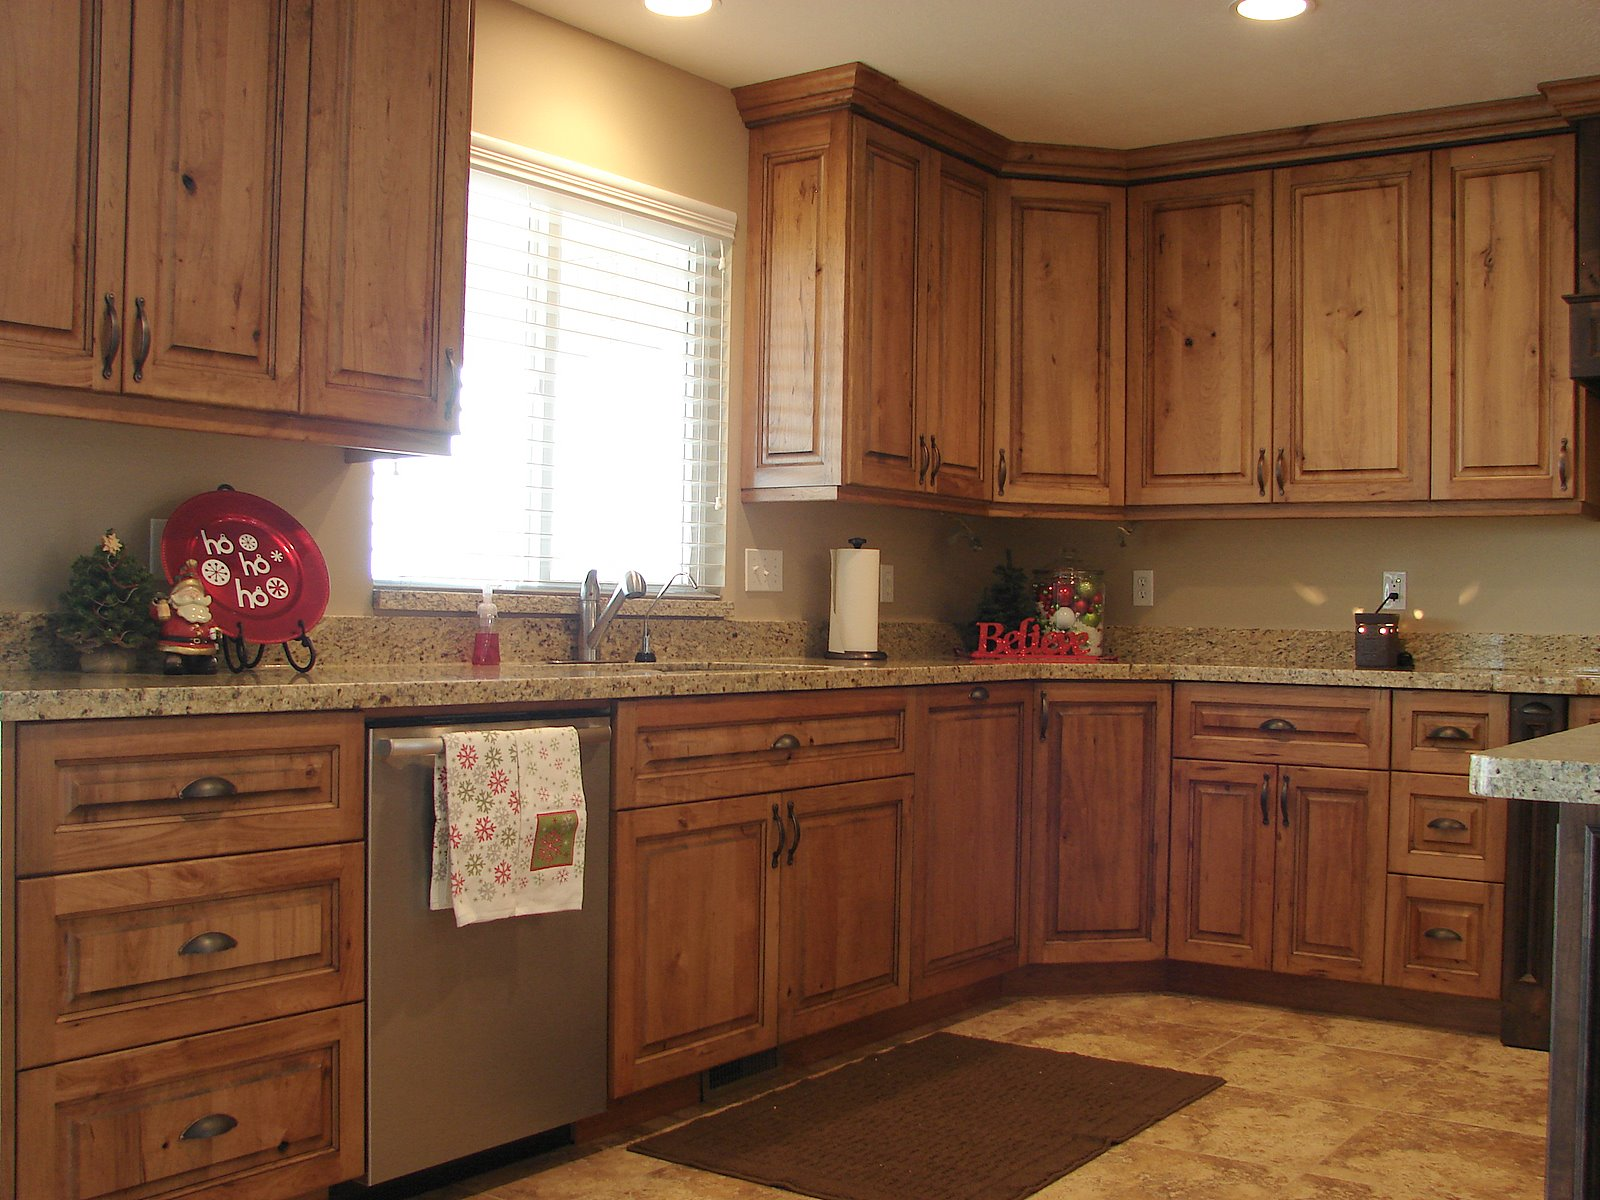 Used Kitchen Cabinets For Sale South Africa Lec Cabinets Rustic Cherry Cabinets